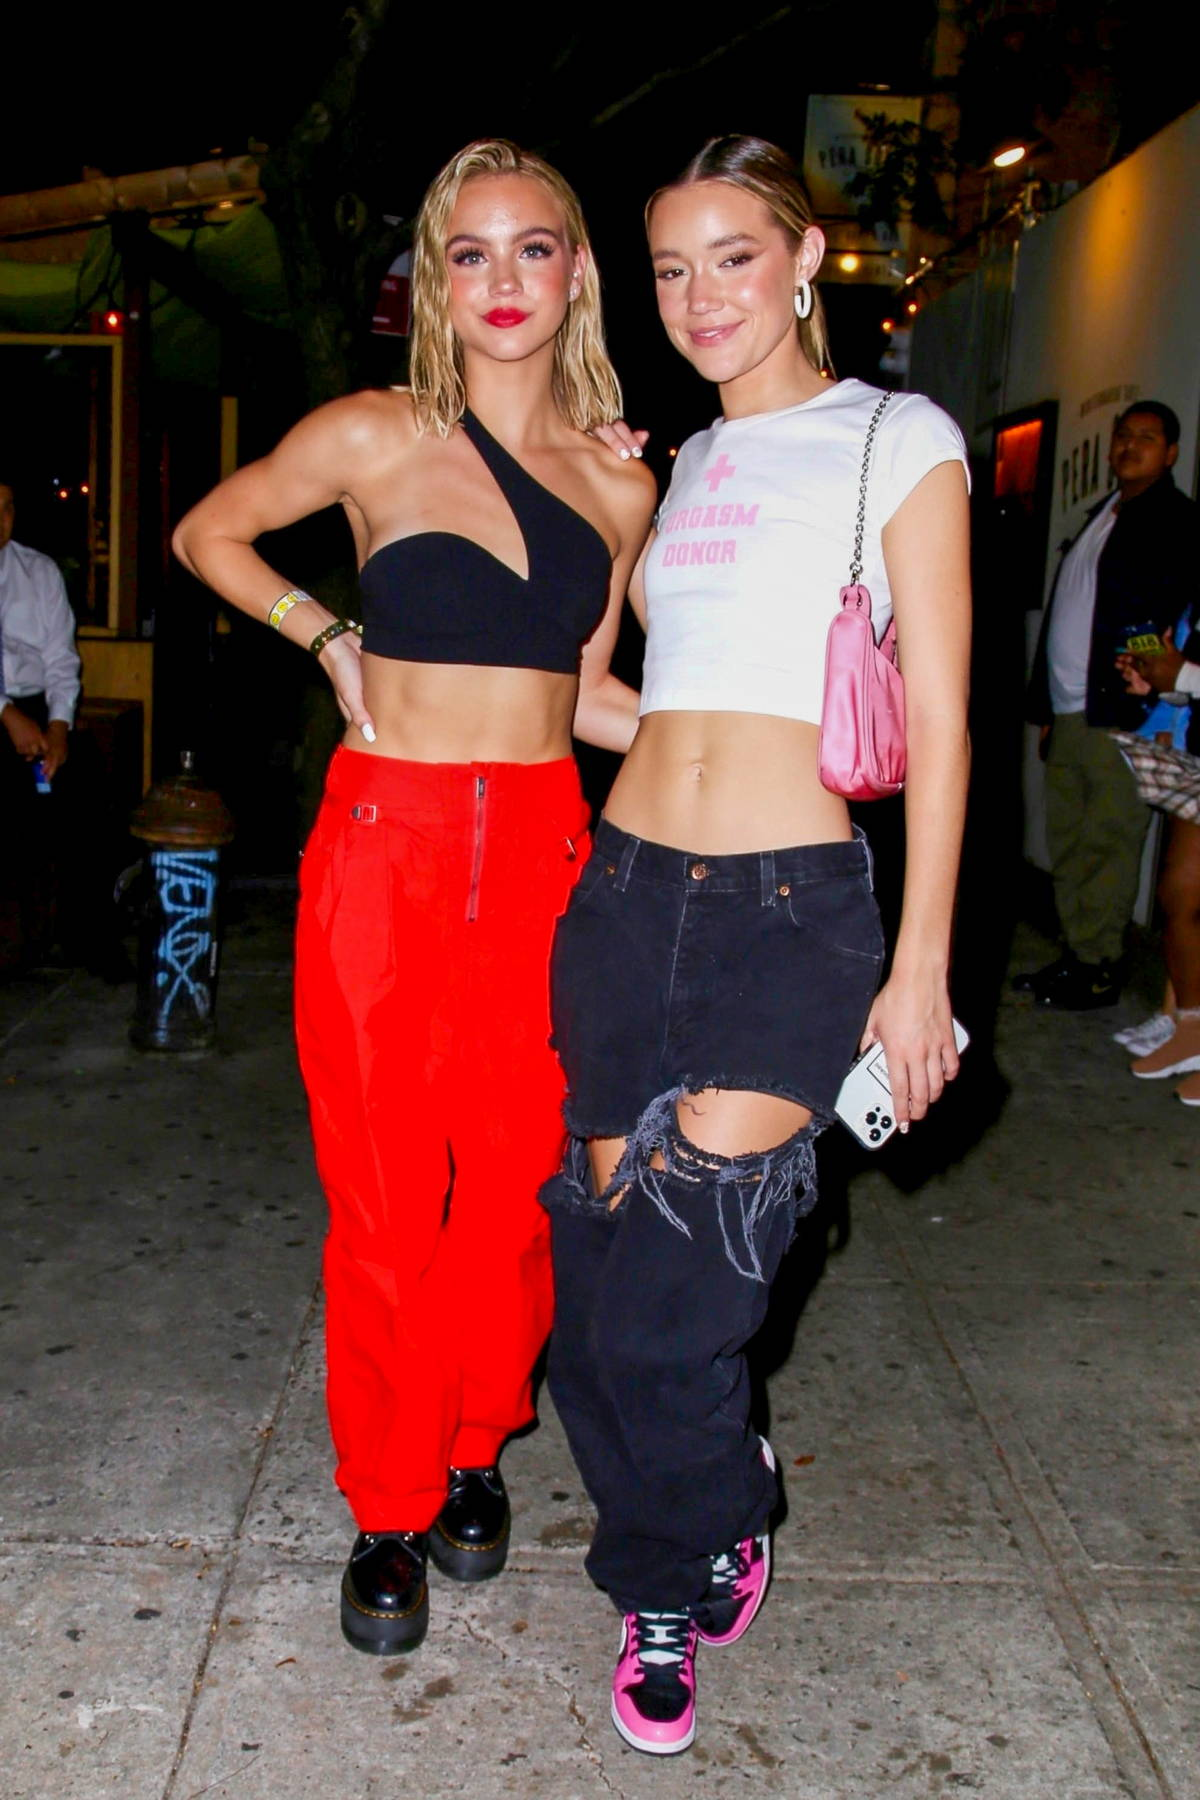 Olivia Ponton and Emma Brooks attend Kid Cudi's NYFW party in New York City